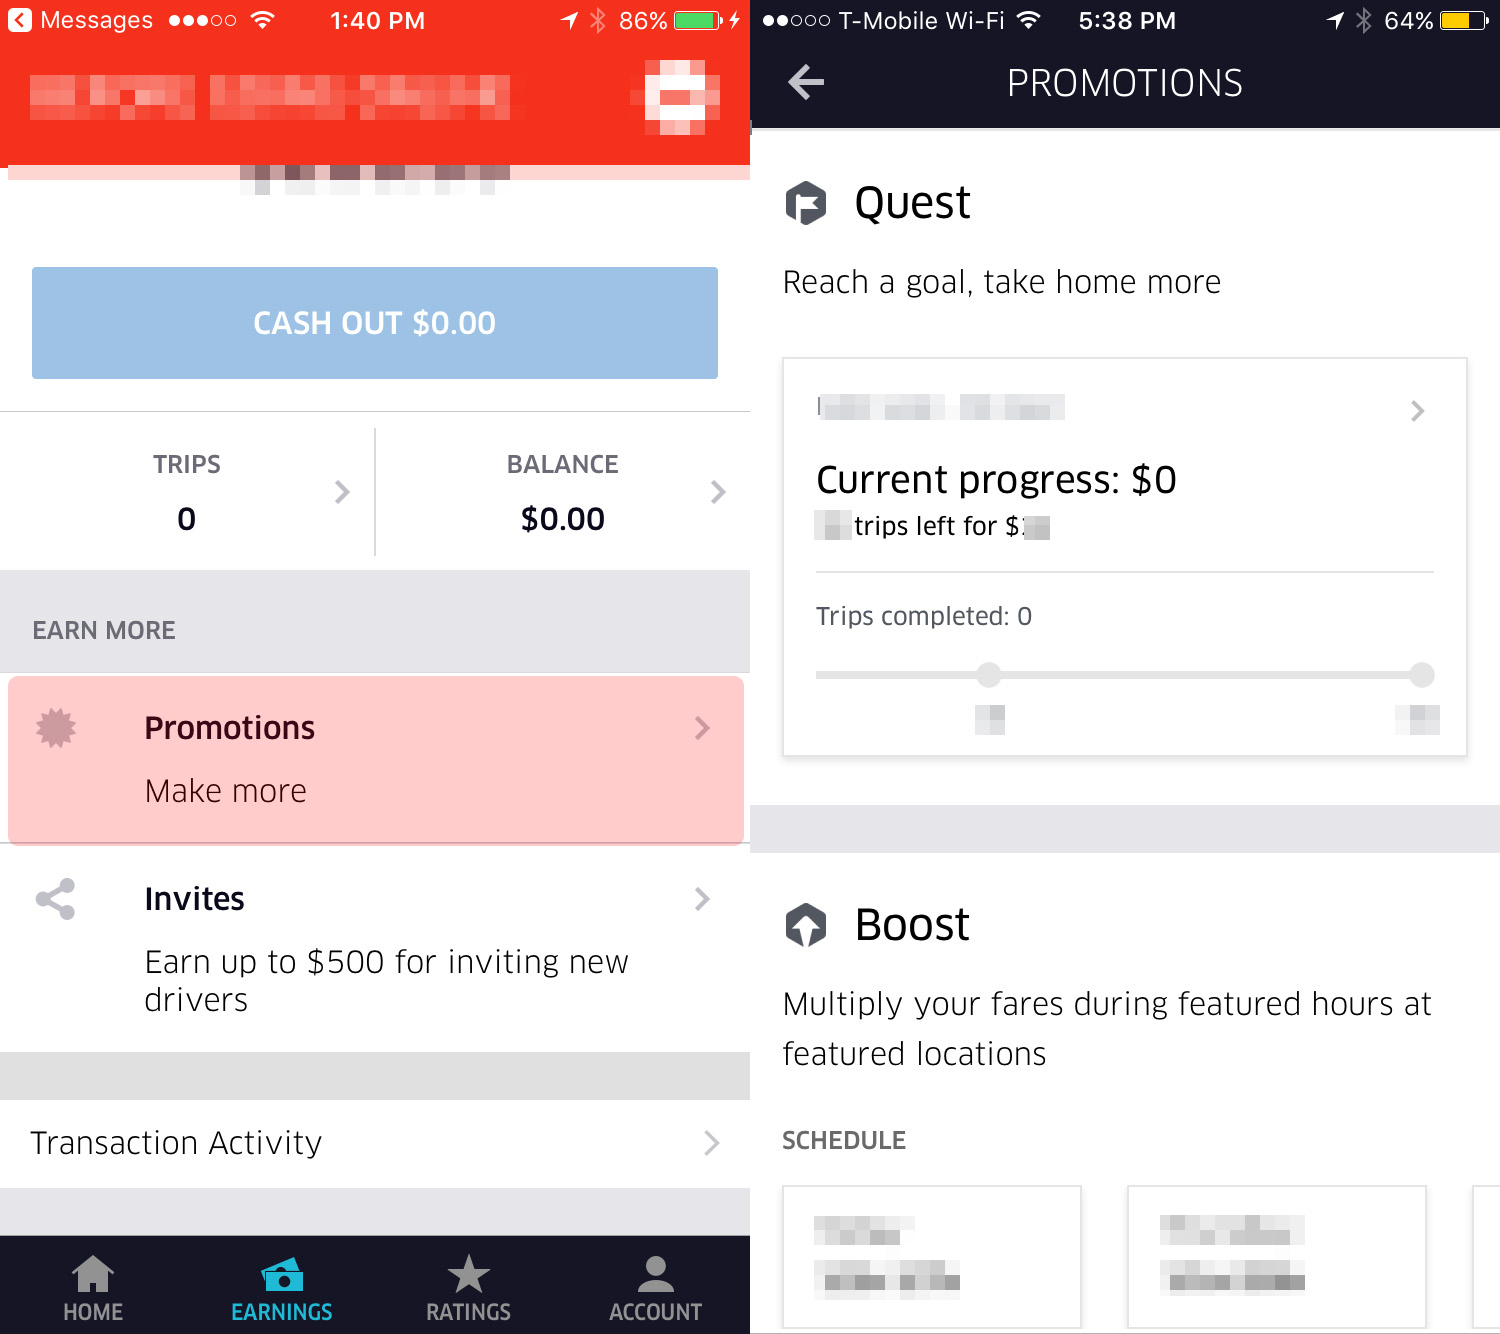 Uncategorized how do uber guaranteed rates work how does it work - Quest Is An Incentive Uber Offers That Pays A Bonus For Completing A Certain Number Of Rides Generally There Will Be An Acceptance Rate Requirement For